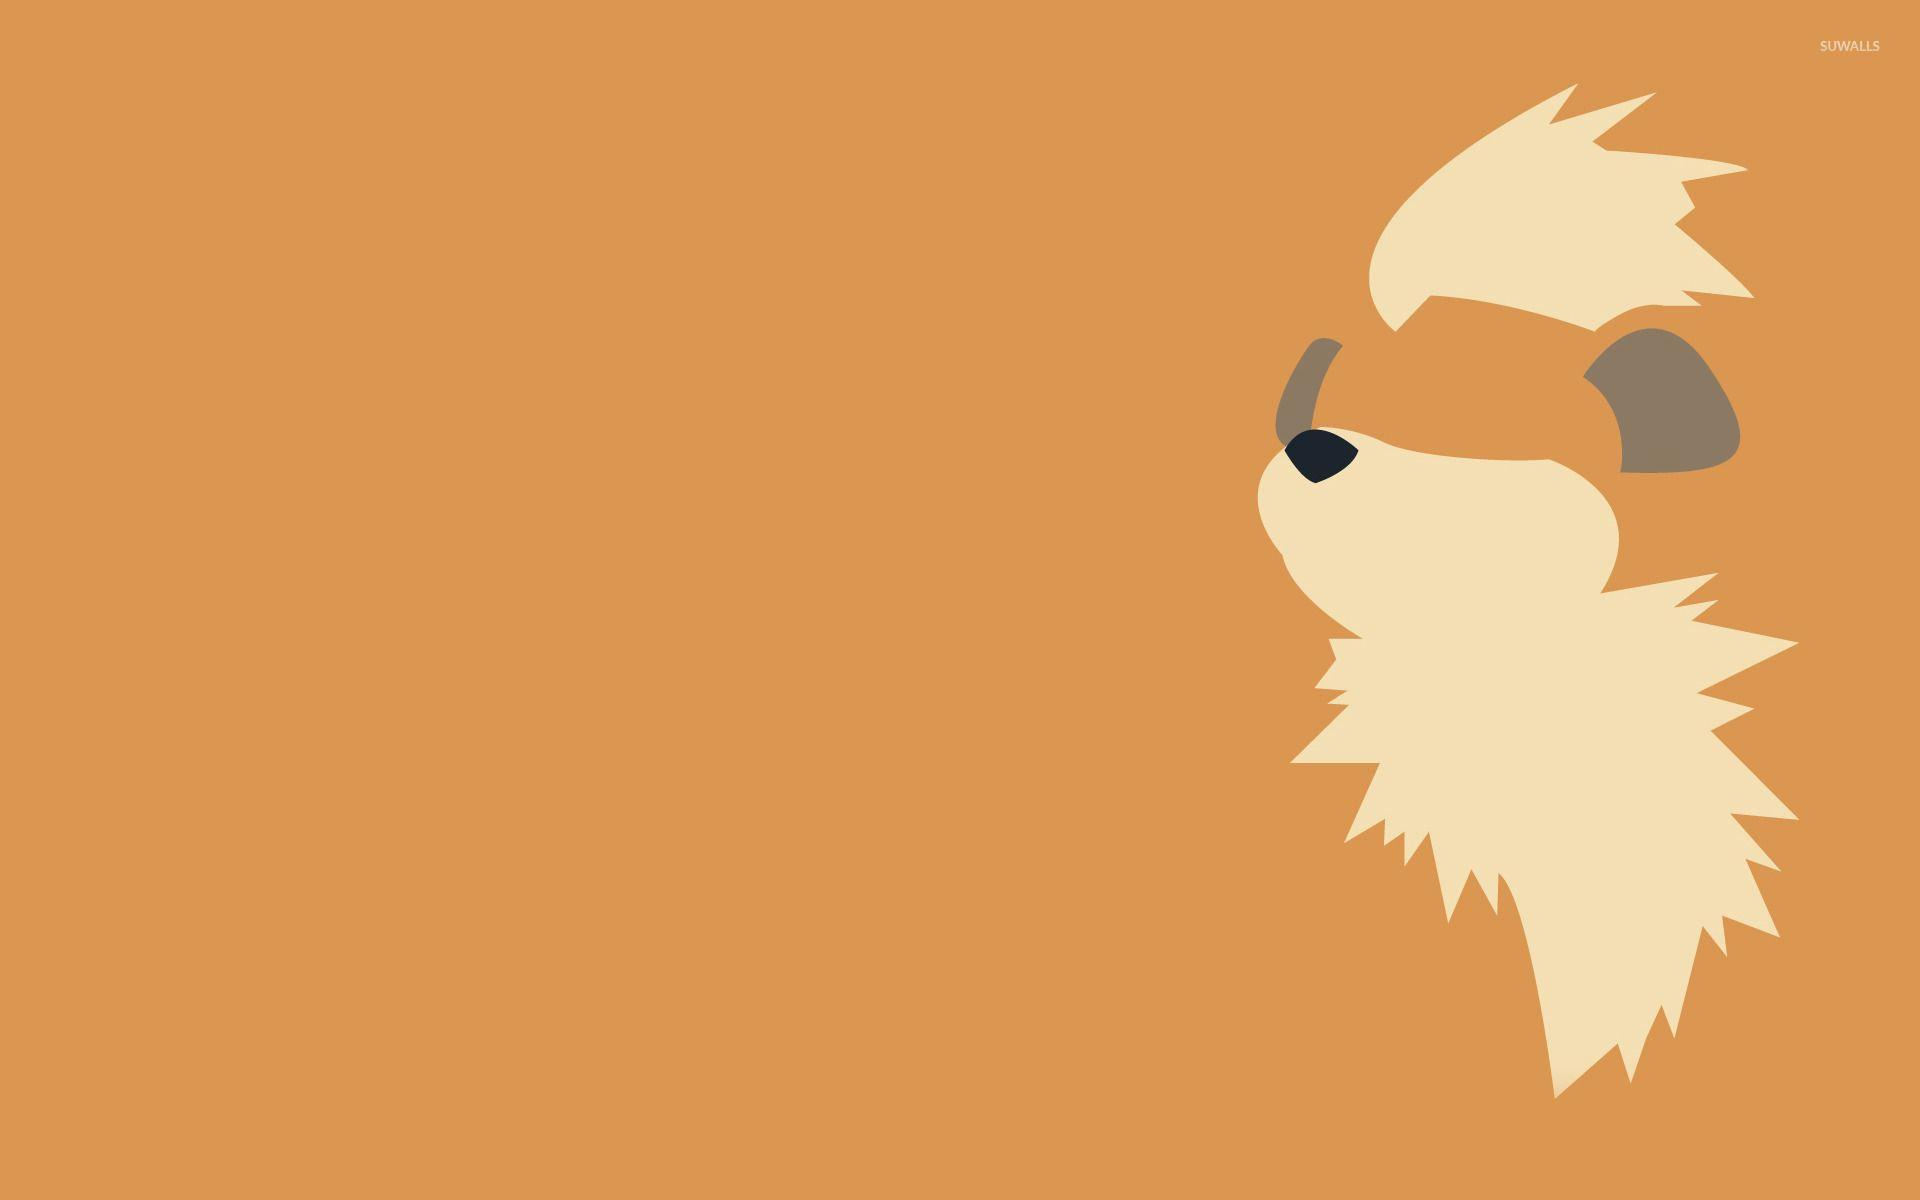 Growlithe wallpaper - Minimalistic wallpapers - #15102